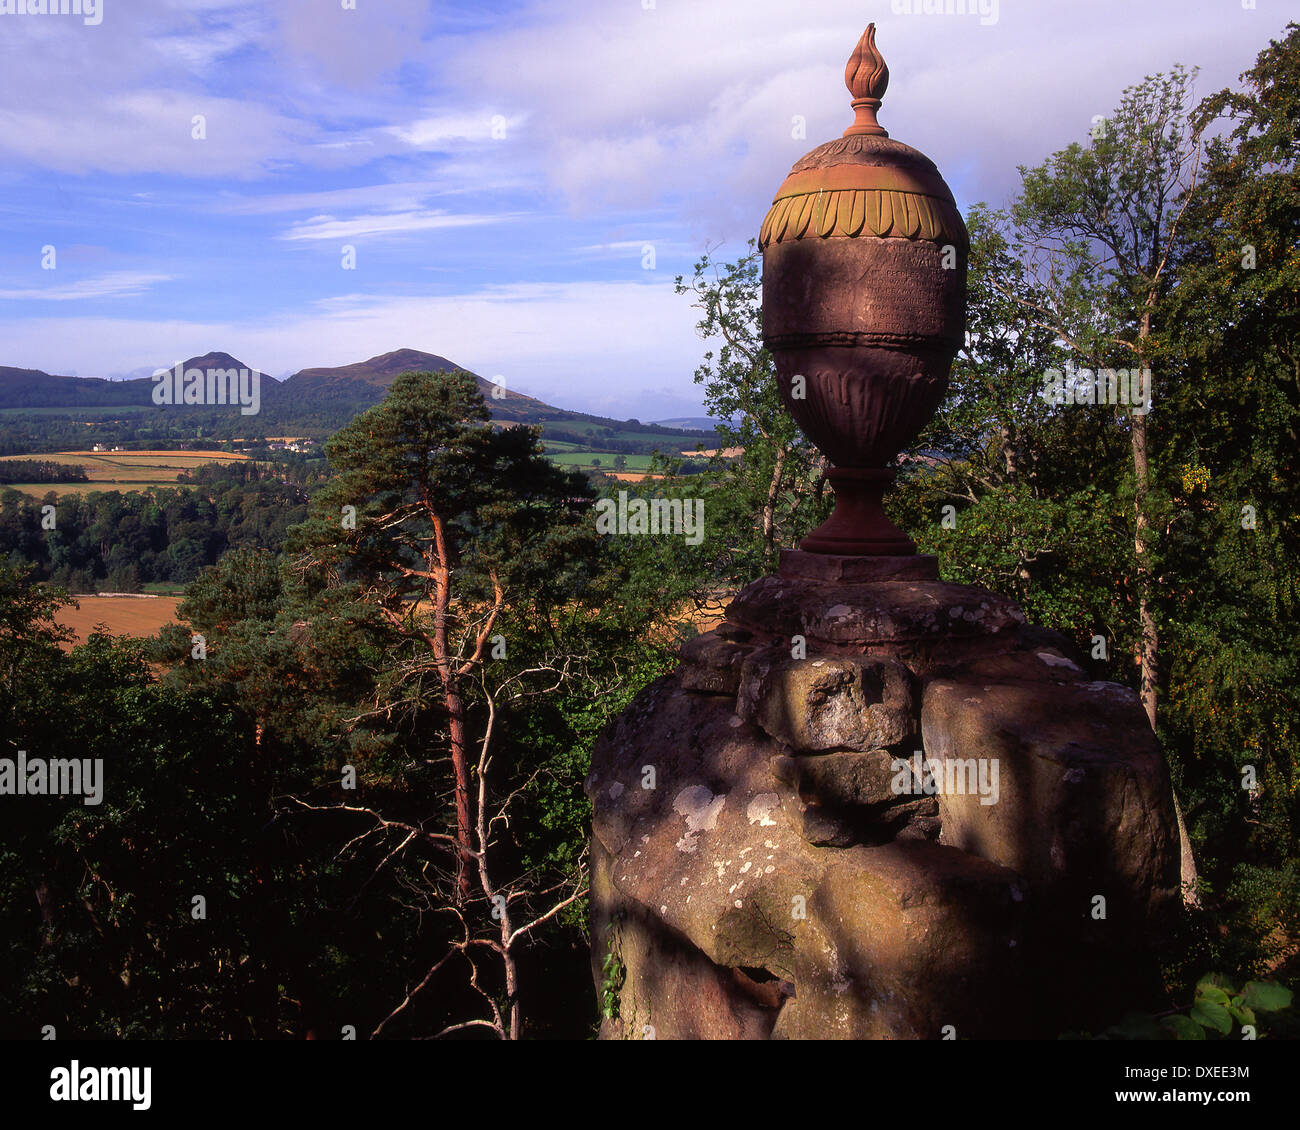 Wallace monument, Eildon hills, Scottish Borders. - Stock Image